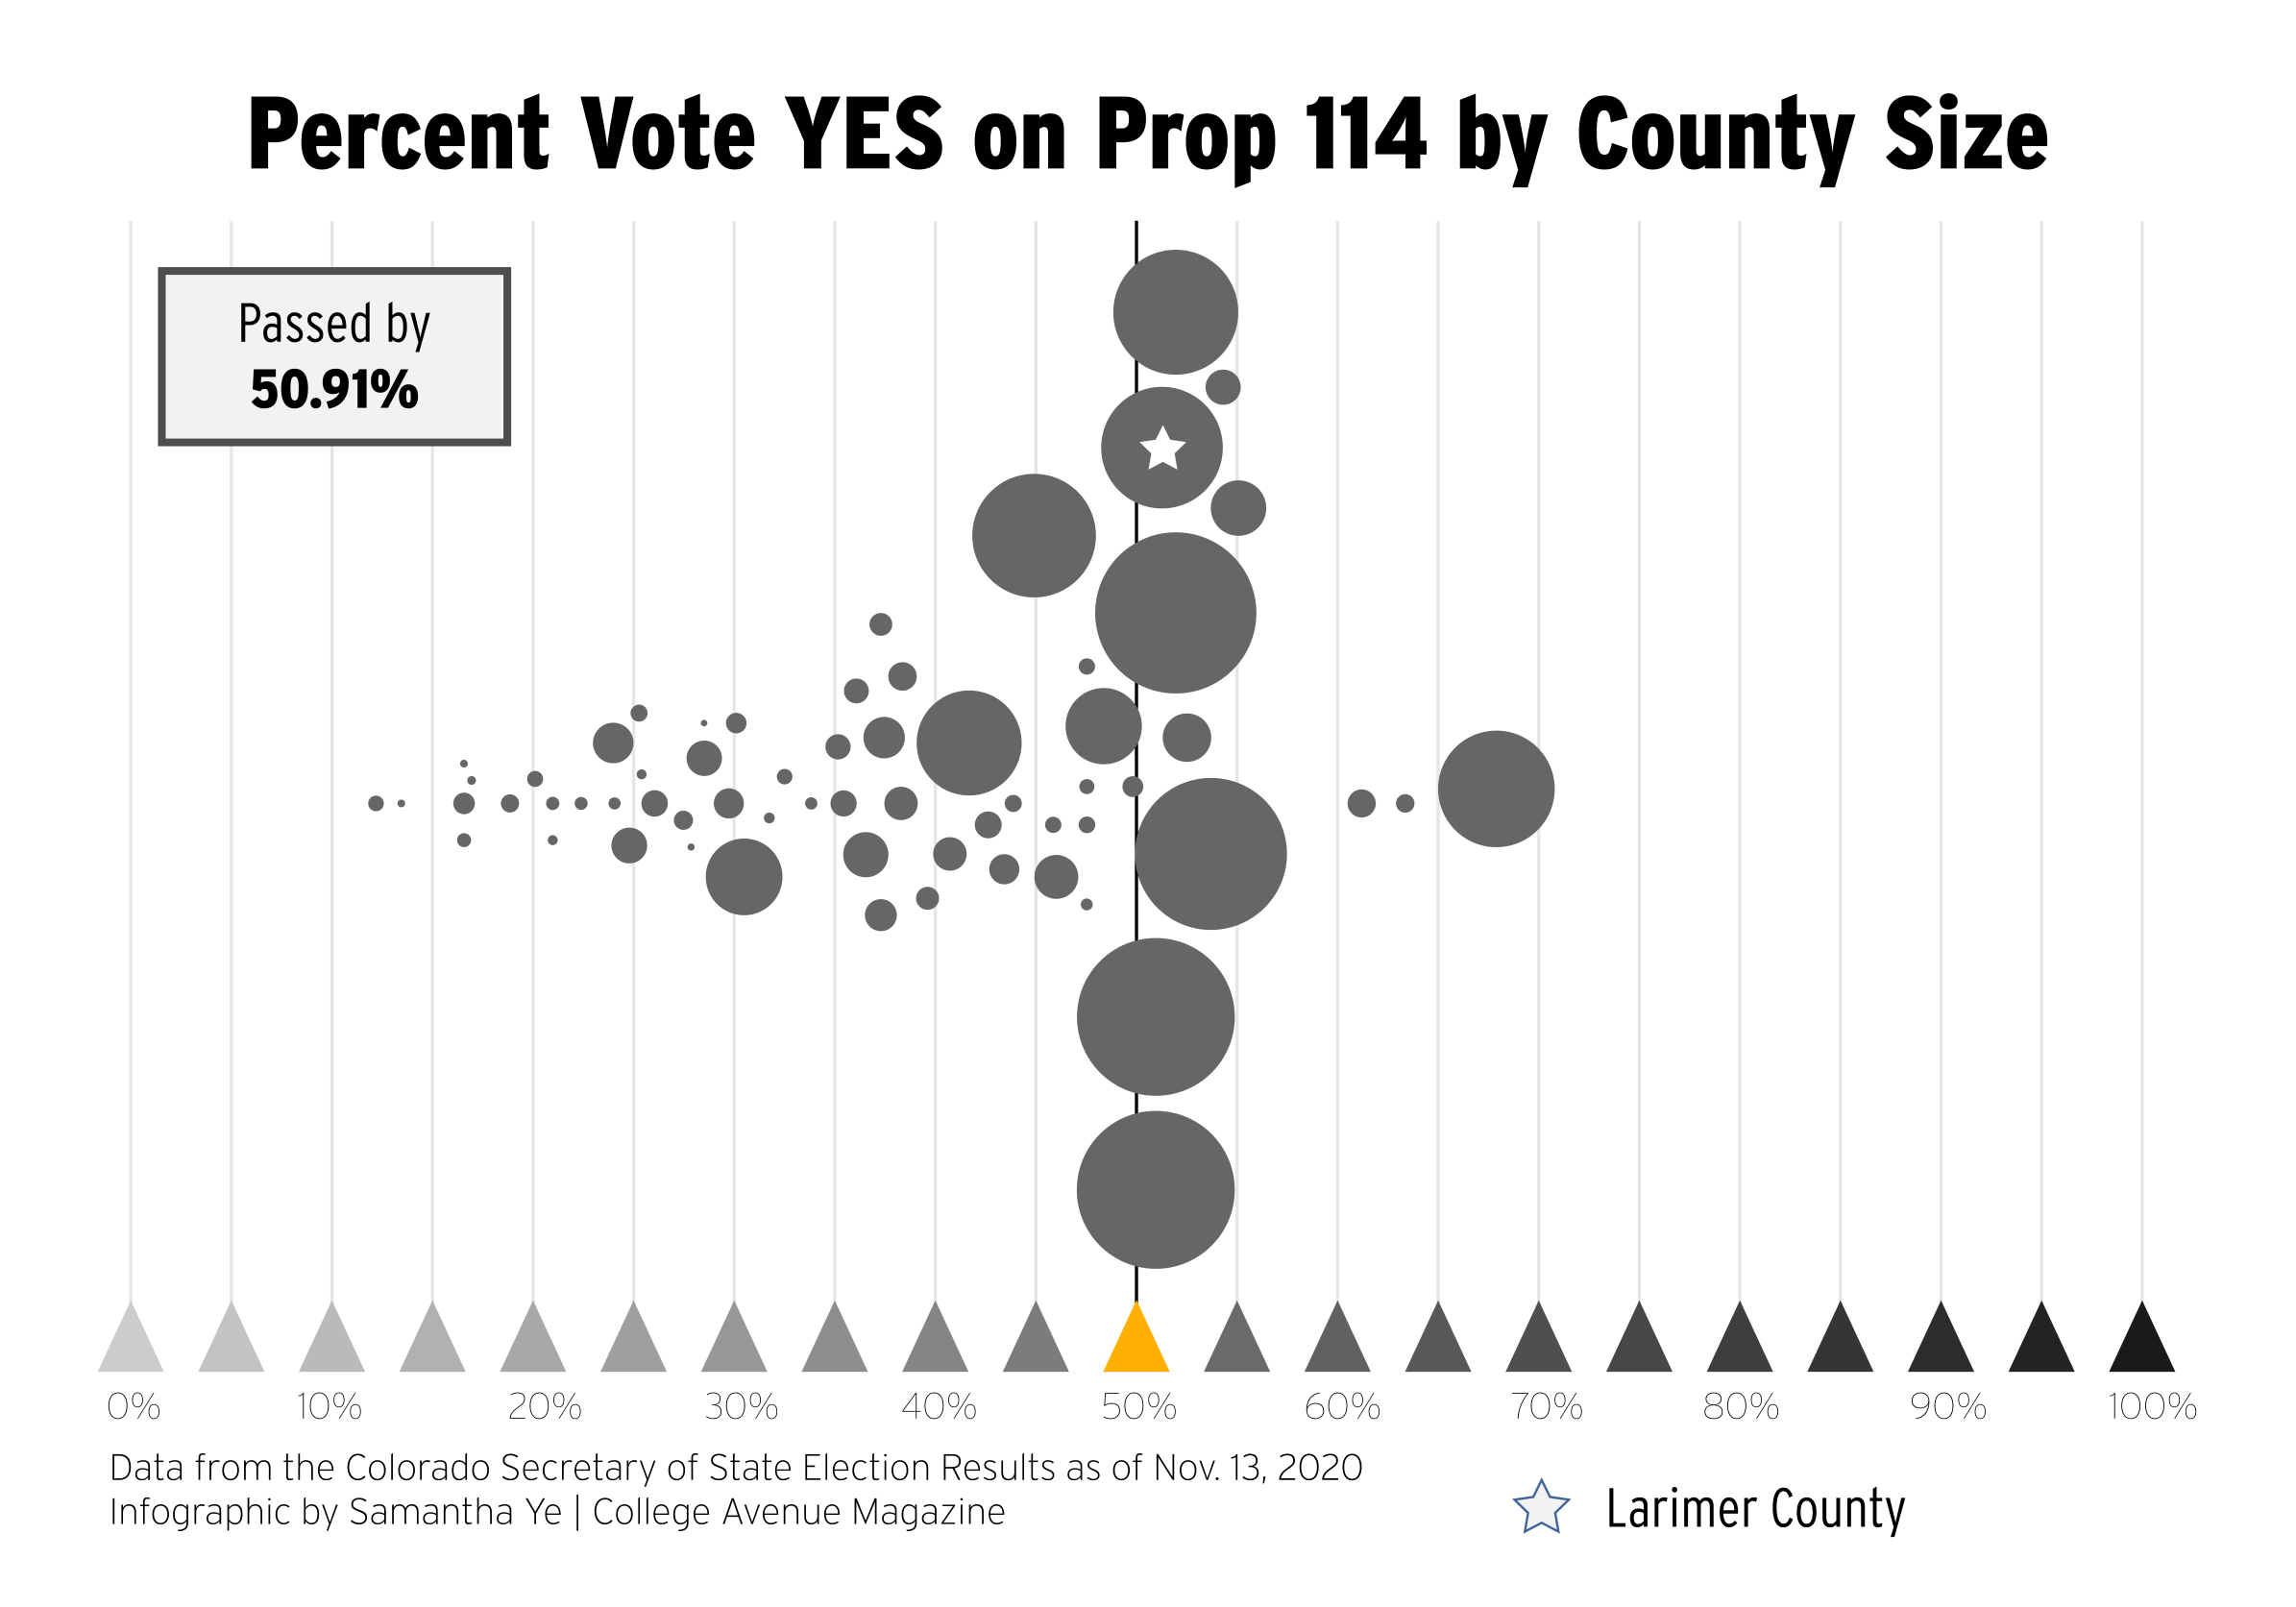 Percent Vote YES on Prop 114 by County Size